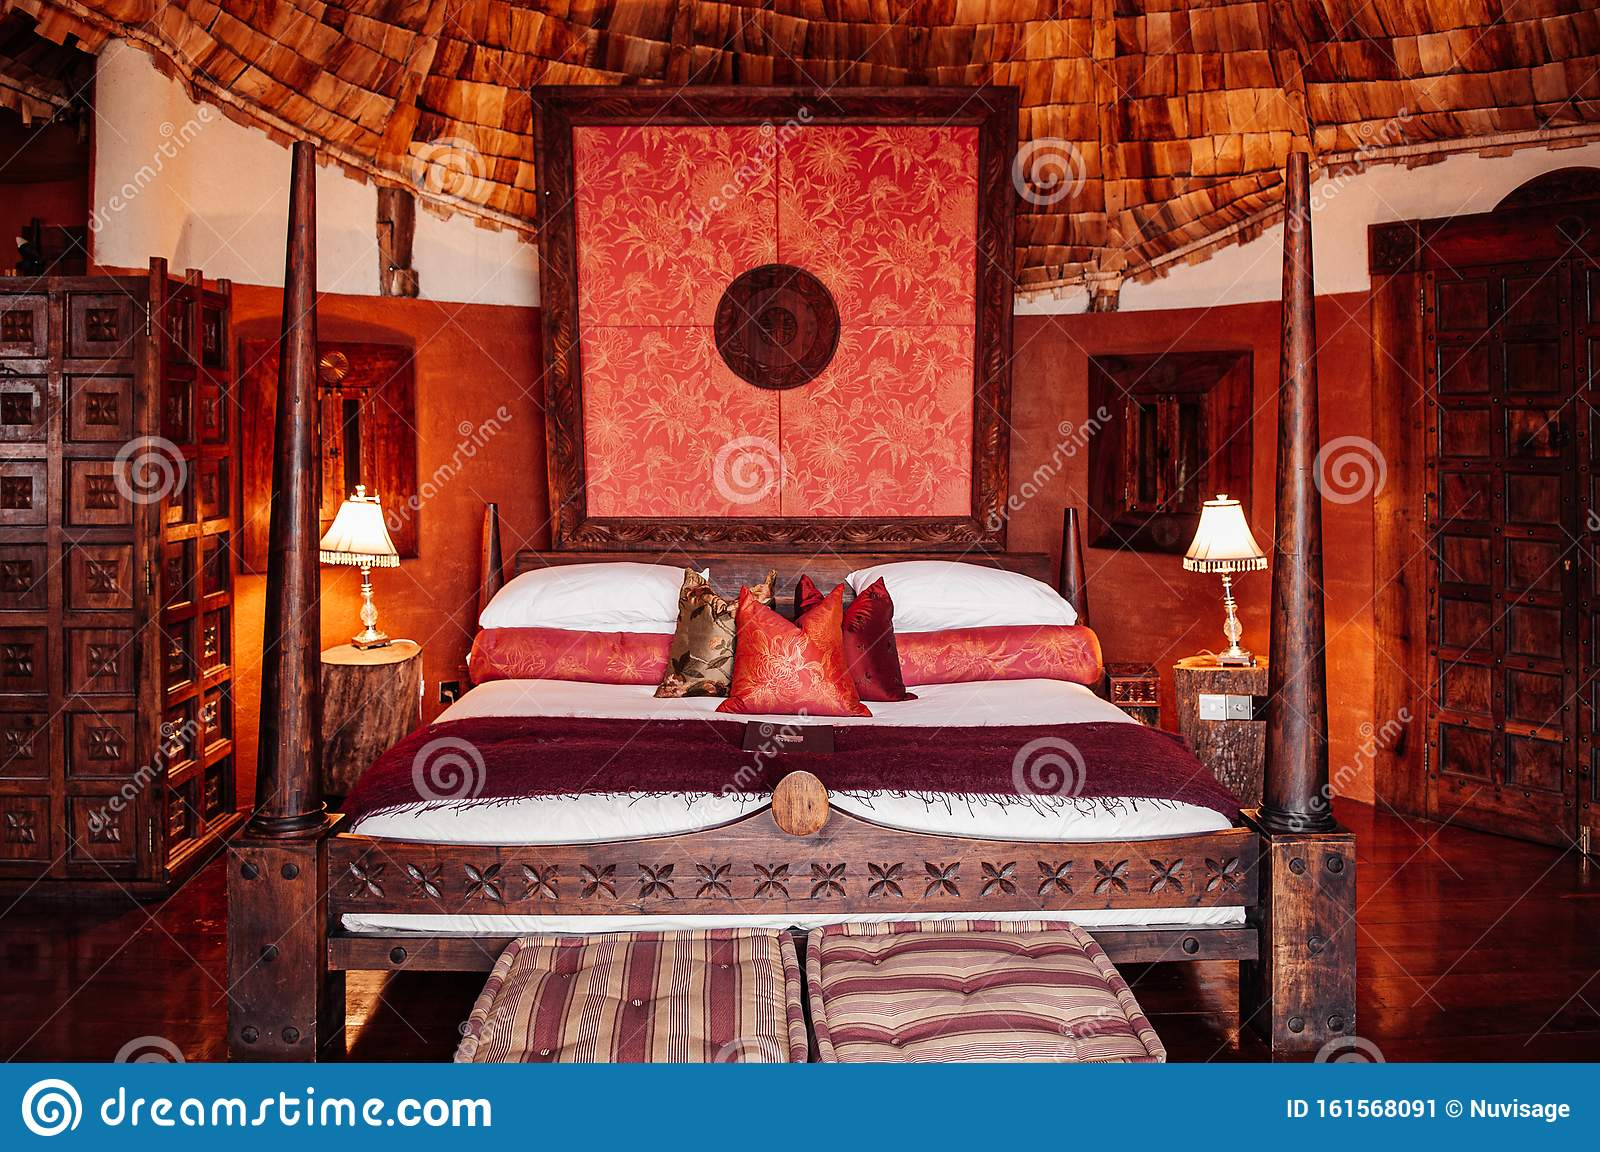 Luxury African Tribal Hut Bedroom Interior With Old Vintage Wooden Bed And Grand Wall Decoration Editorial Photo Image Of Patterned Interior 161568091